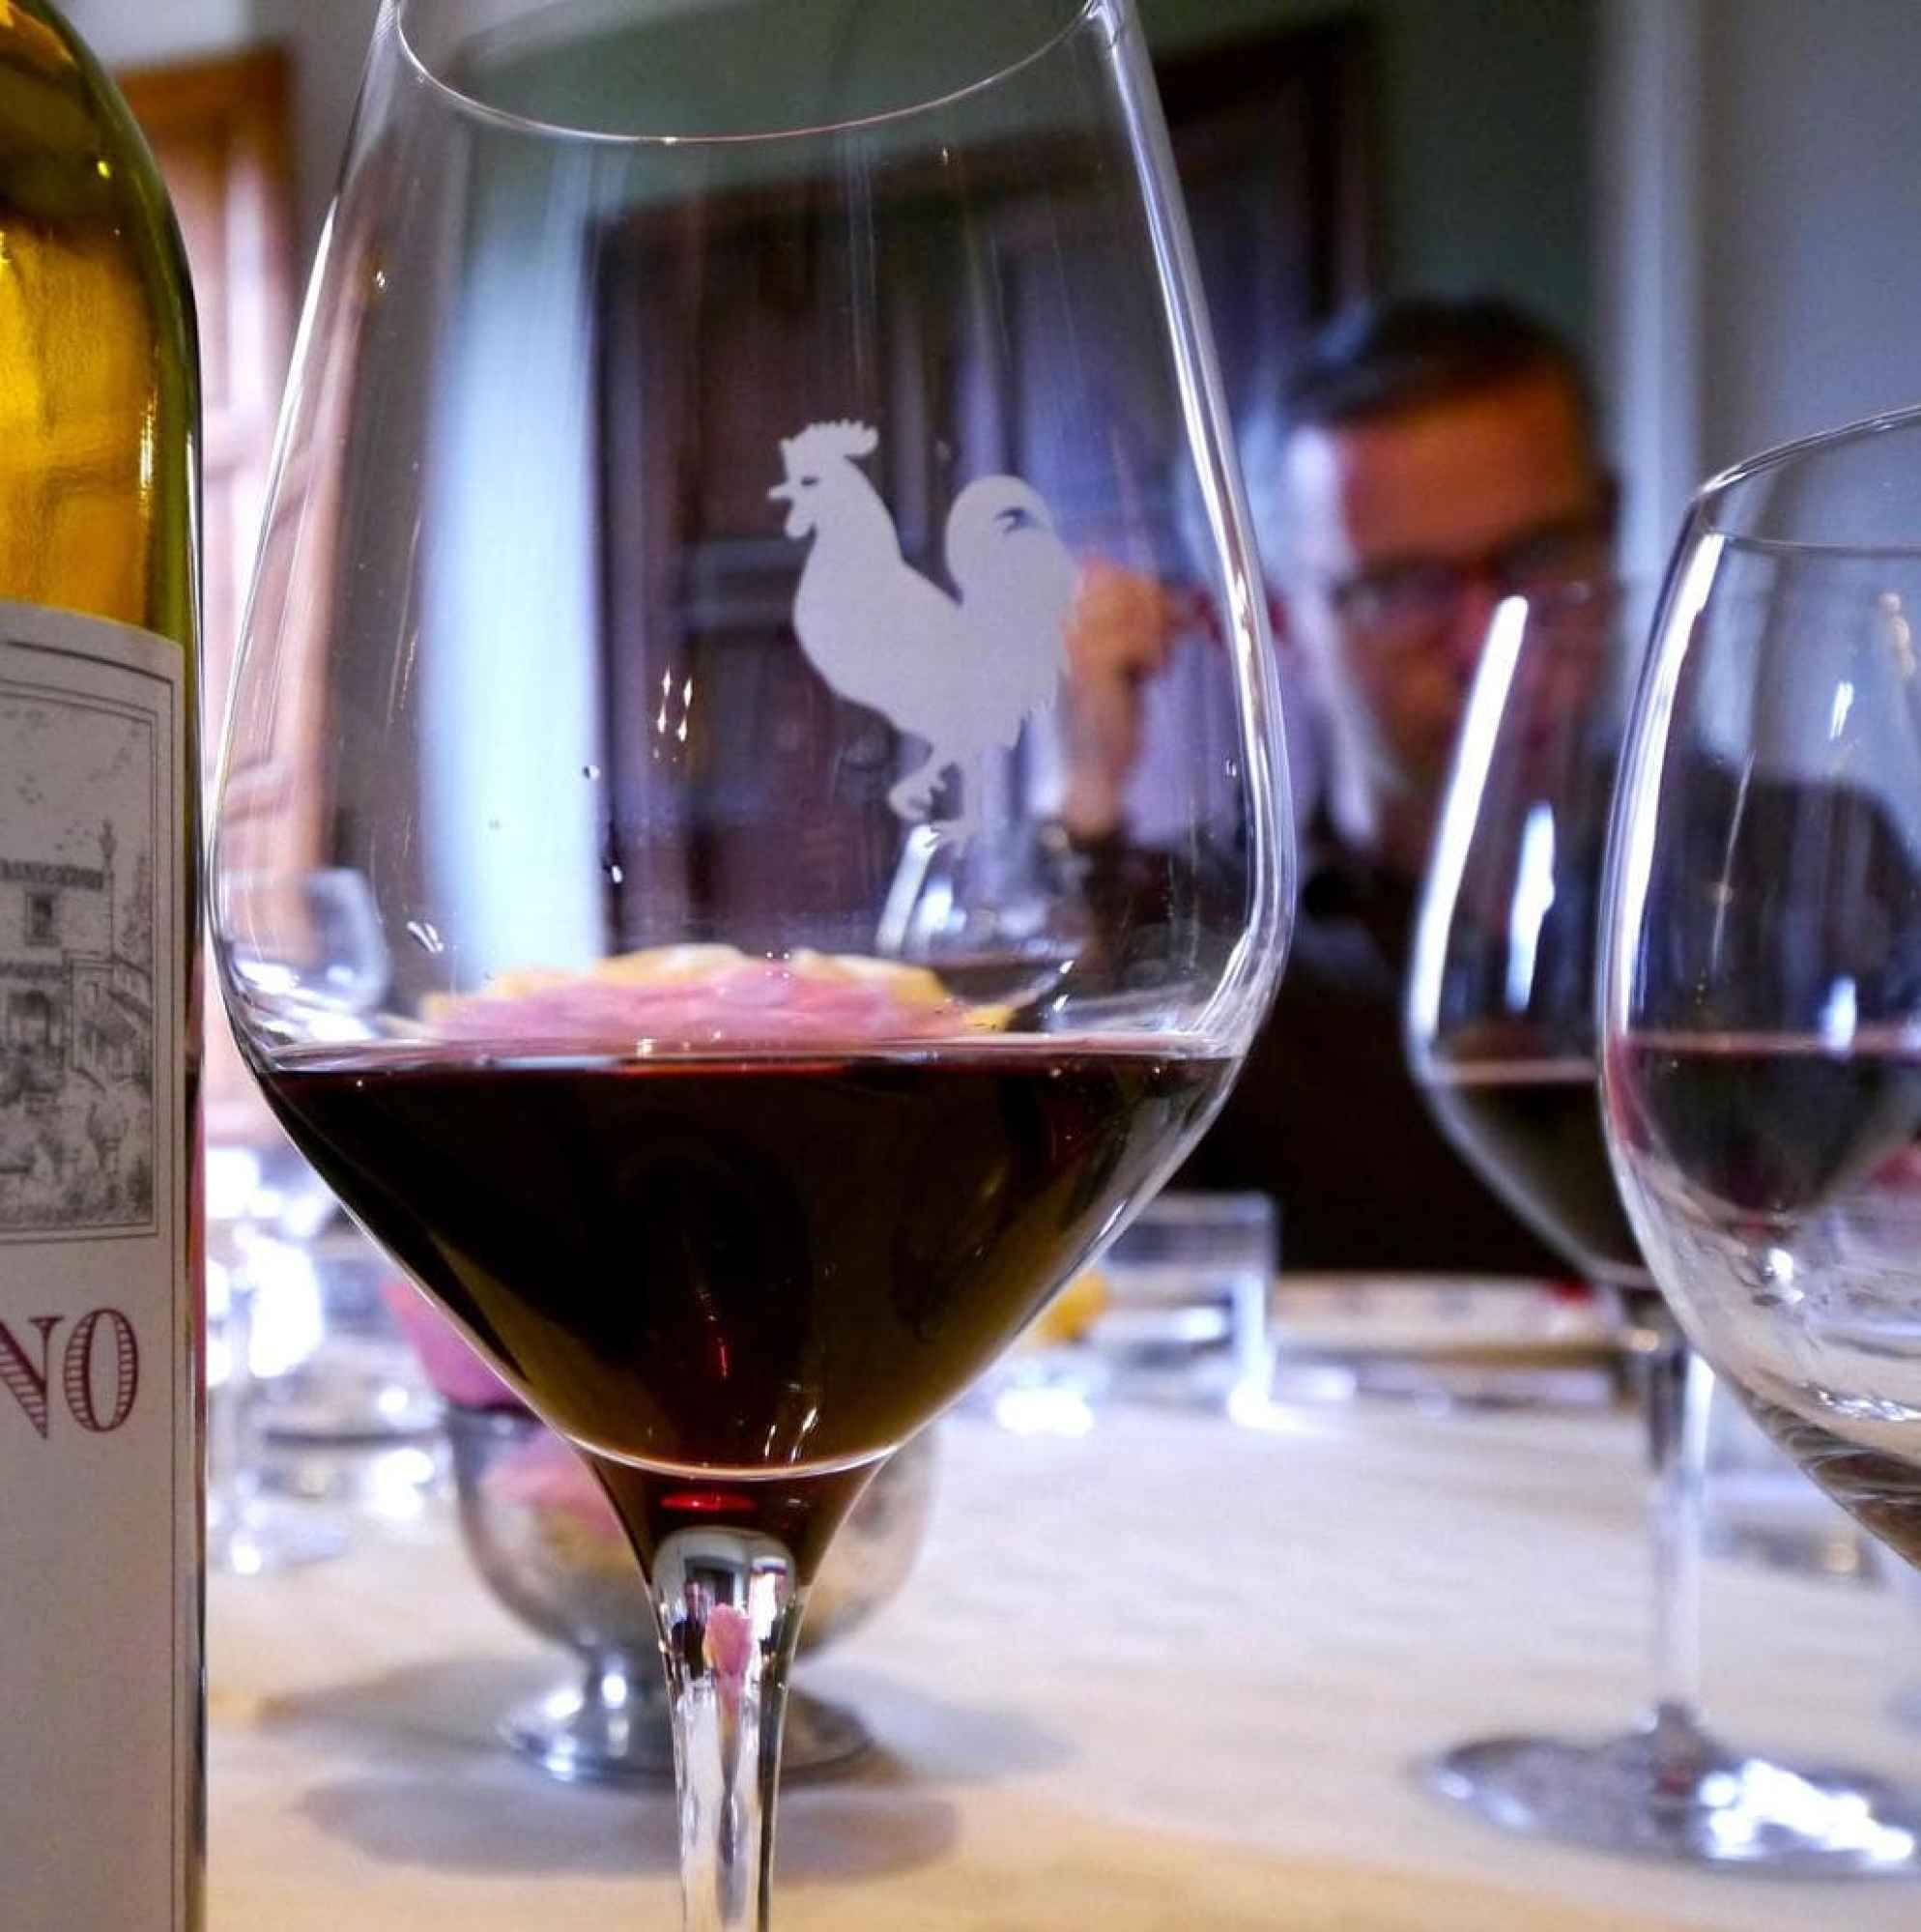 The famous rooster in the Chianti Classico seal